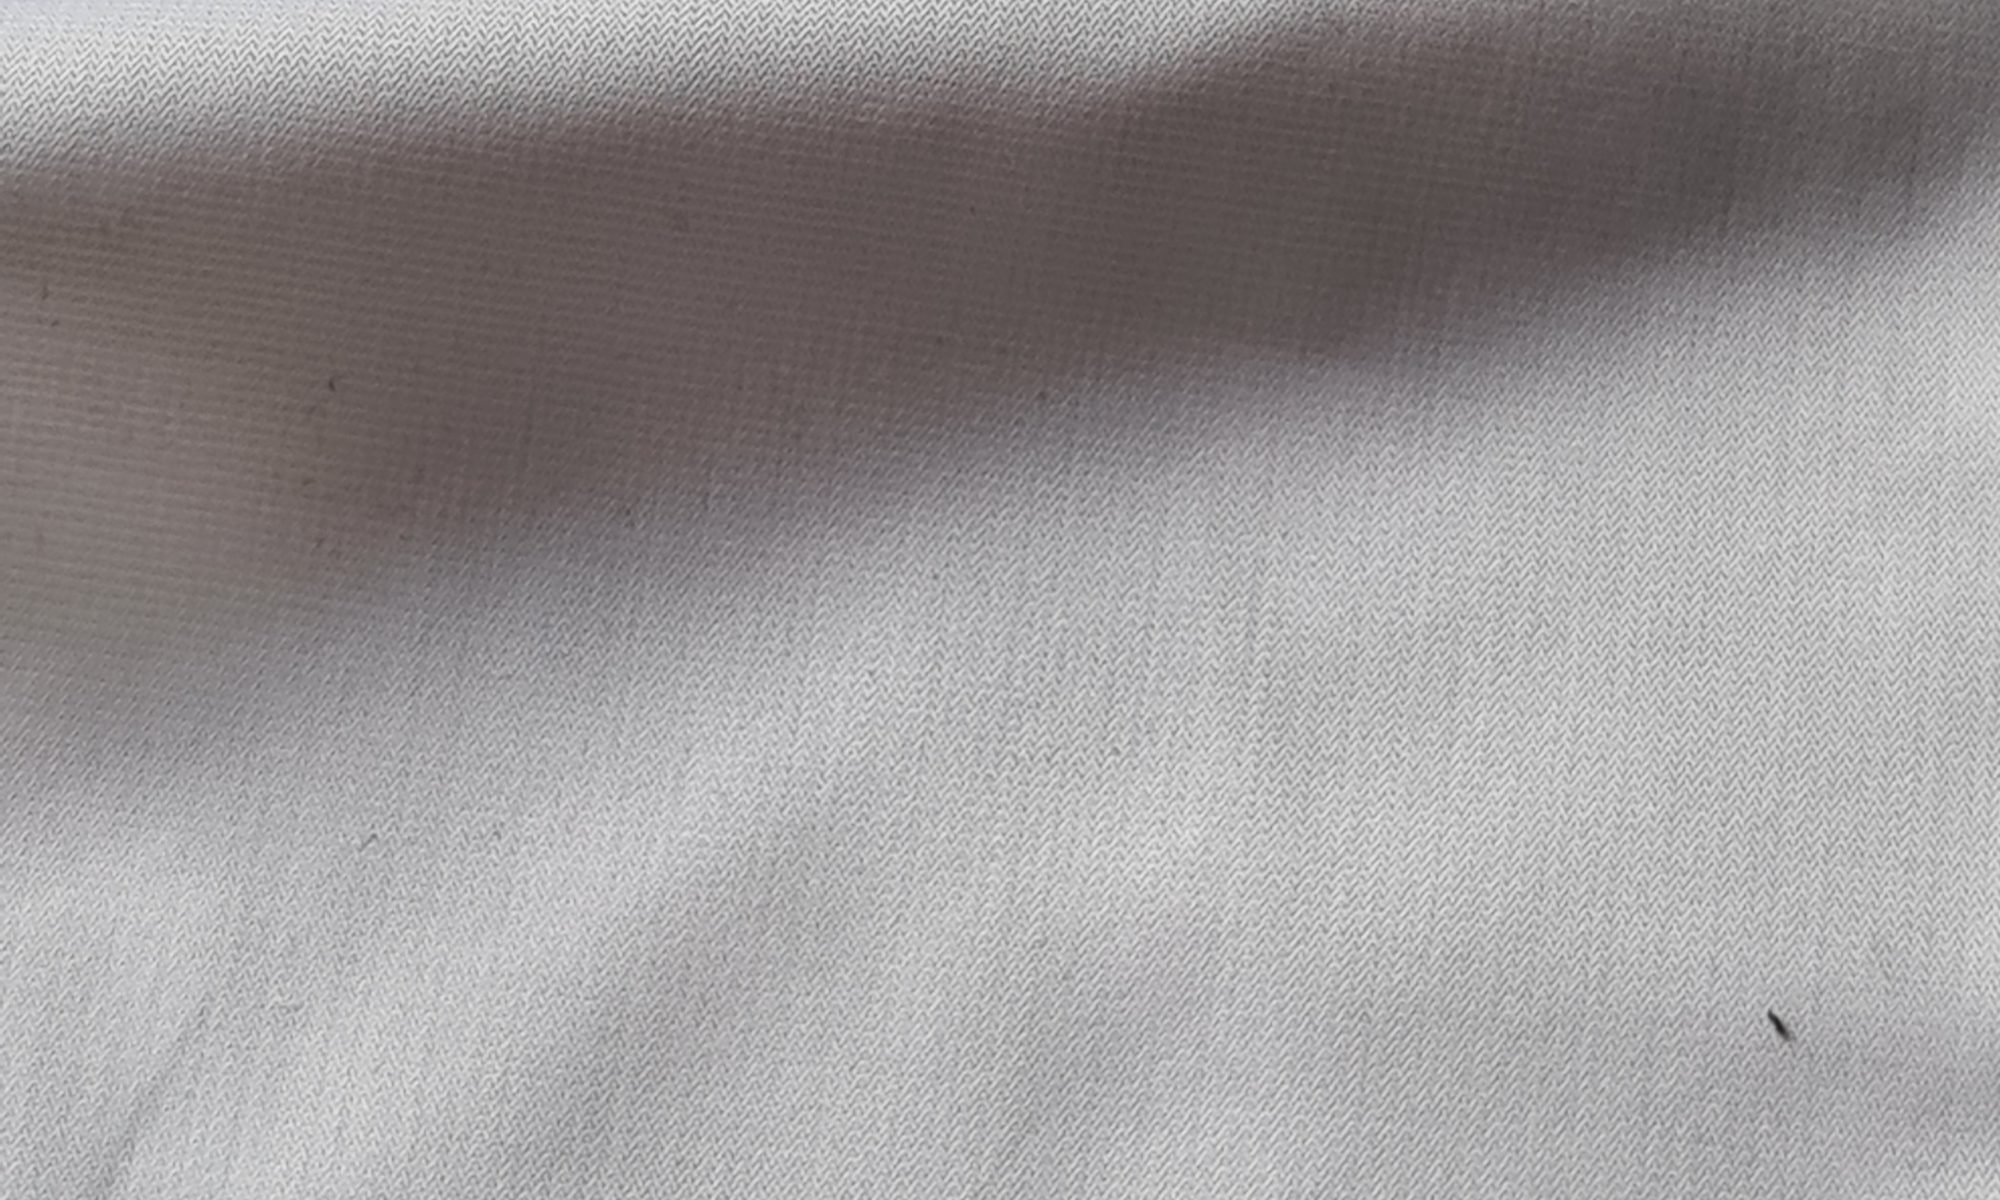 7581 pink shirt popelin fabric WIDTH cm151 WEIGHT gr180 - gr119 square meter - COMPOSITION 100 cotton - 250mts